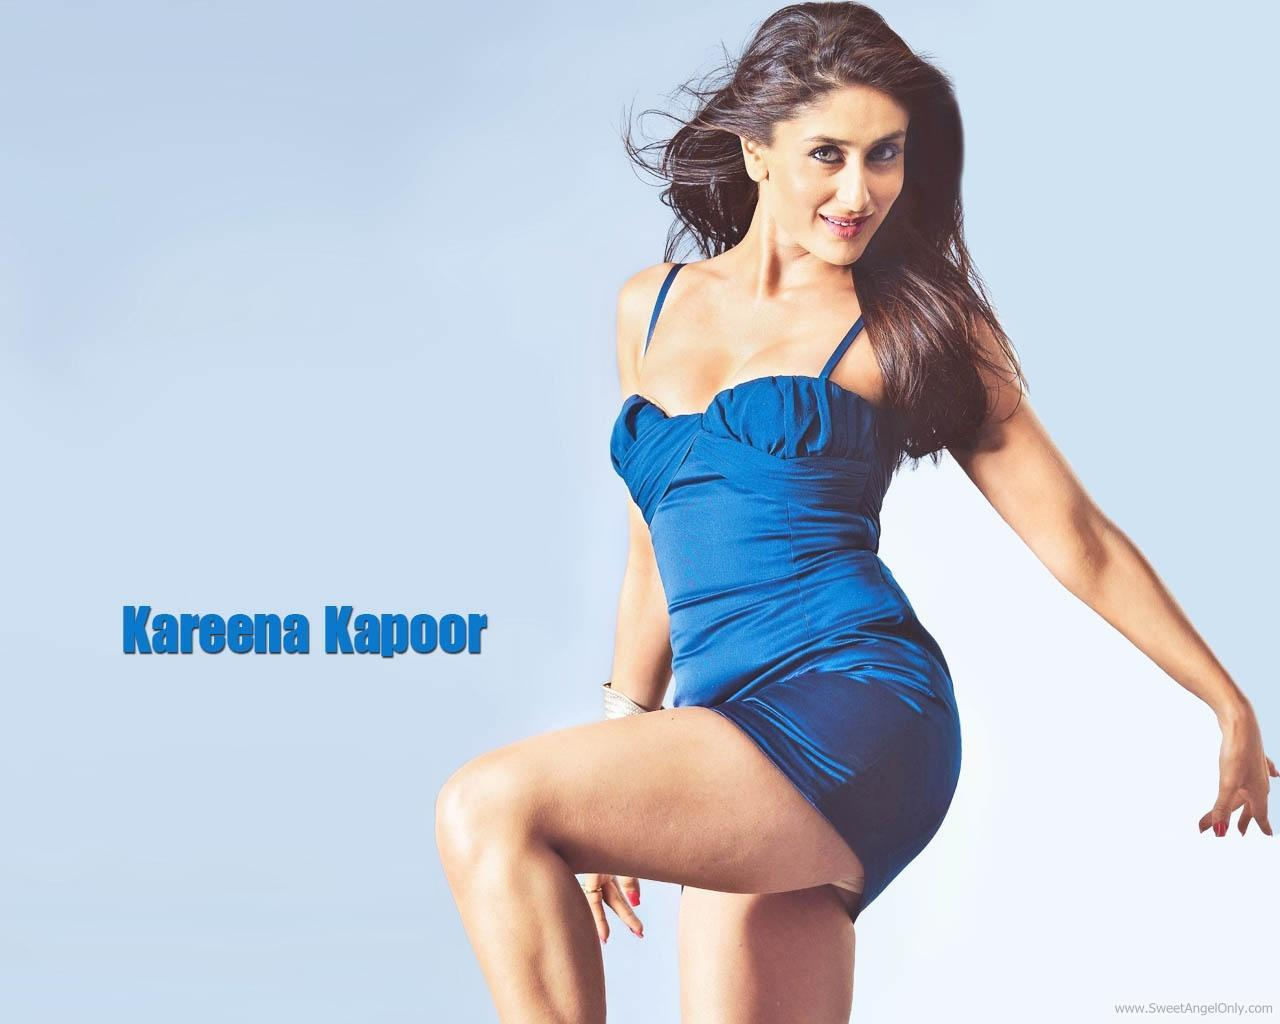 kareena kapoor hd wallpapers New Santa Banta 1280x1024